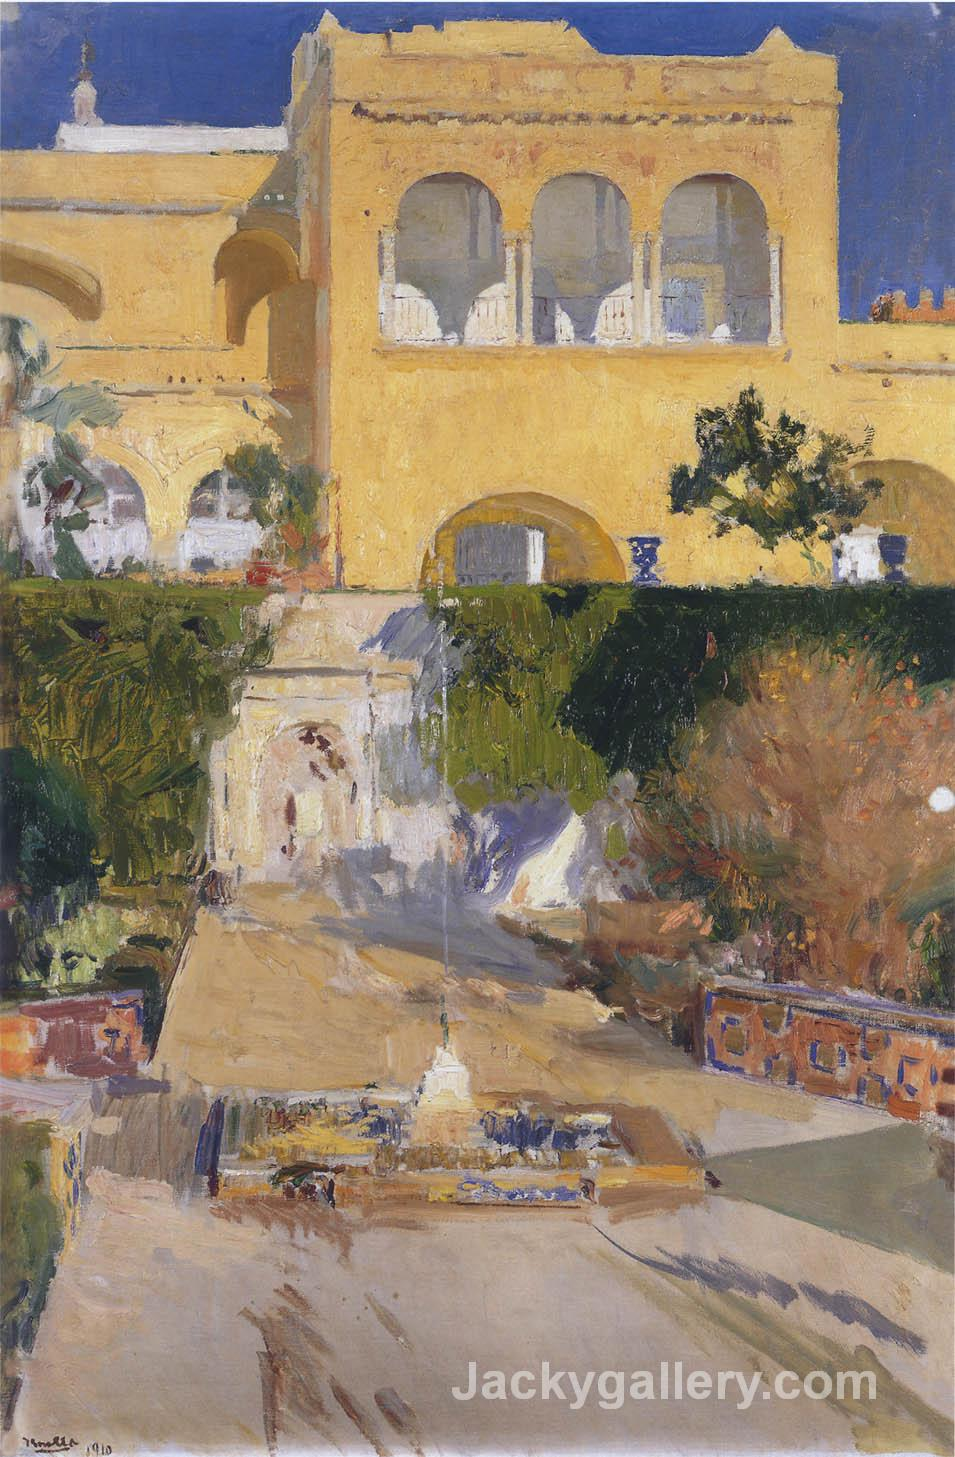 Afternoon sun at the Alcazar of Seville by Joaquin Sorolla y Bastida paintings reproduction